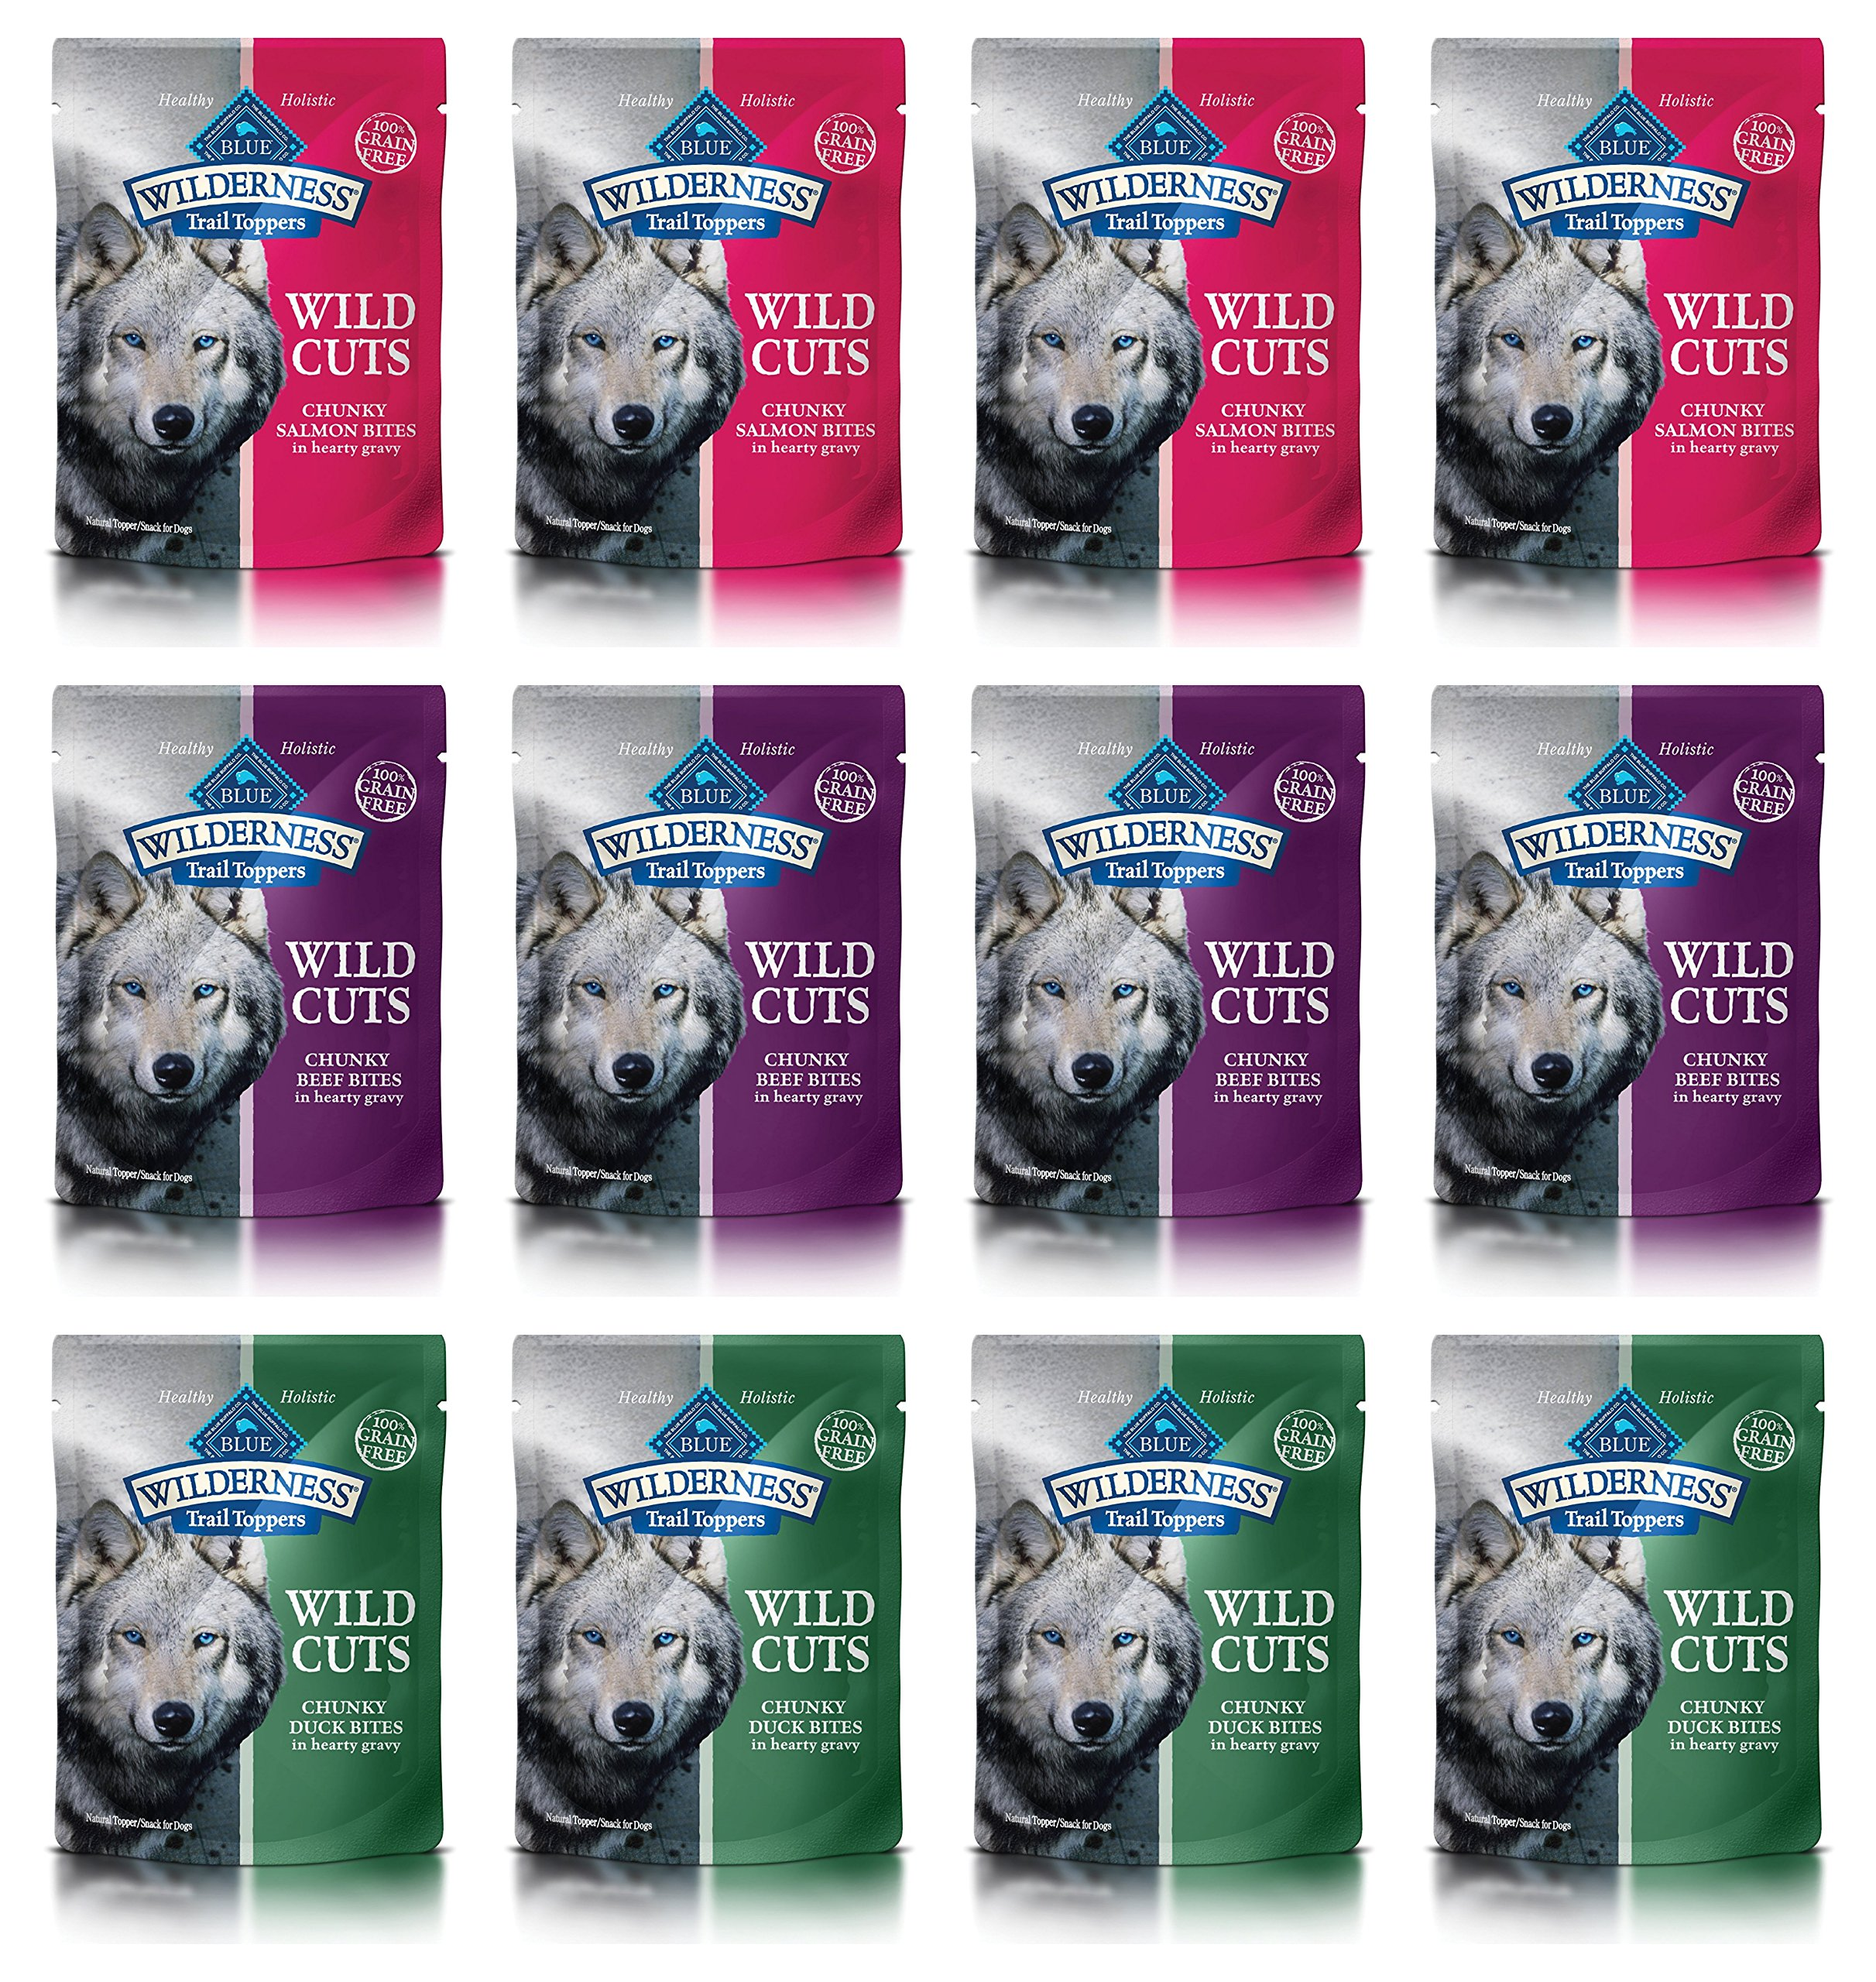 Blue Wilderness Trail Toppers Wild Cuts Dog Food in 3 Flavors: (4) Duck, (4) Beef, and (4) Salmon (3 Oz Each, 12 Pouches Total)